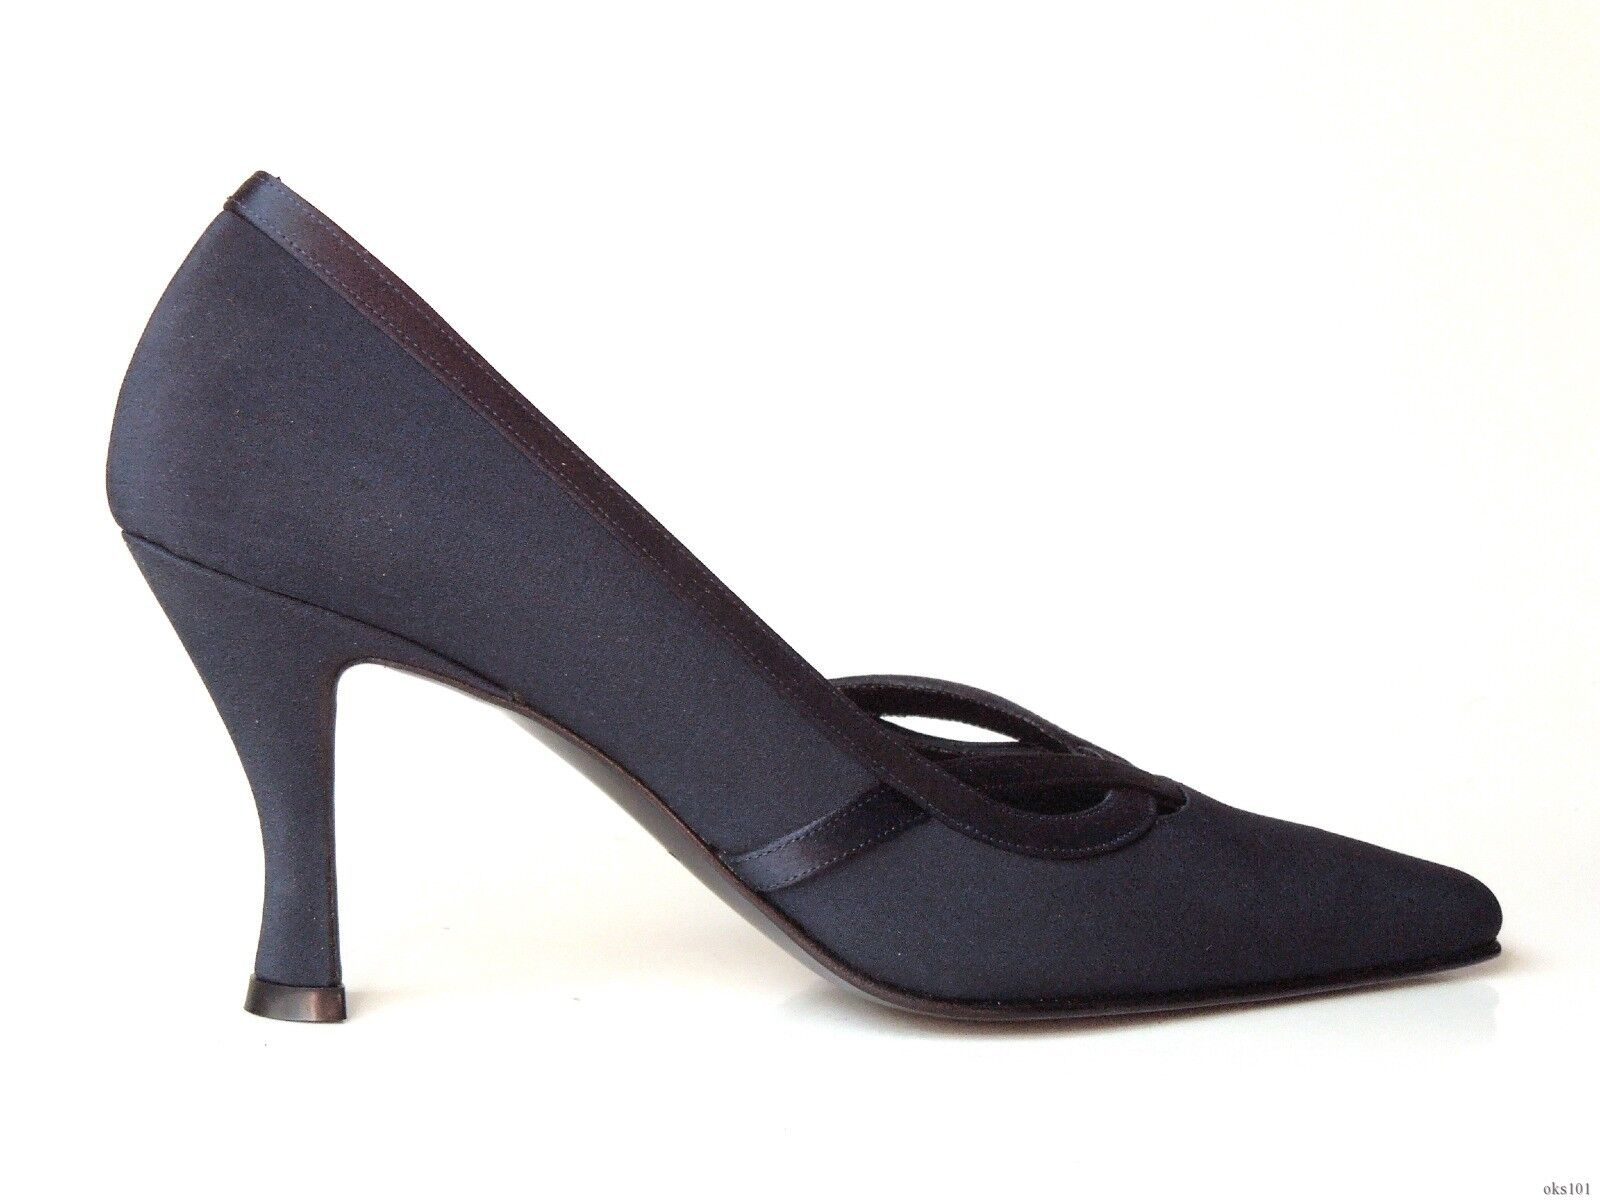 NEU Versani 7010 navy satin pointy toe PUMPS Schuhes  - classy